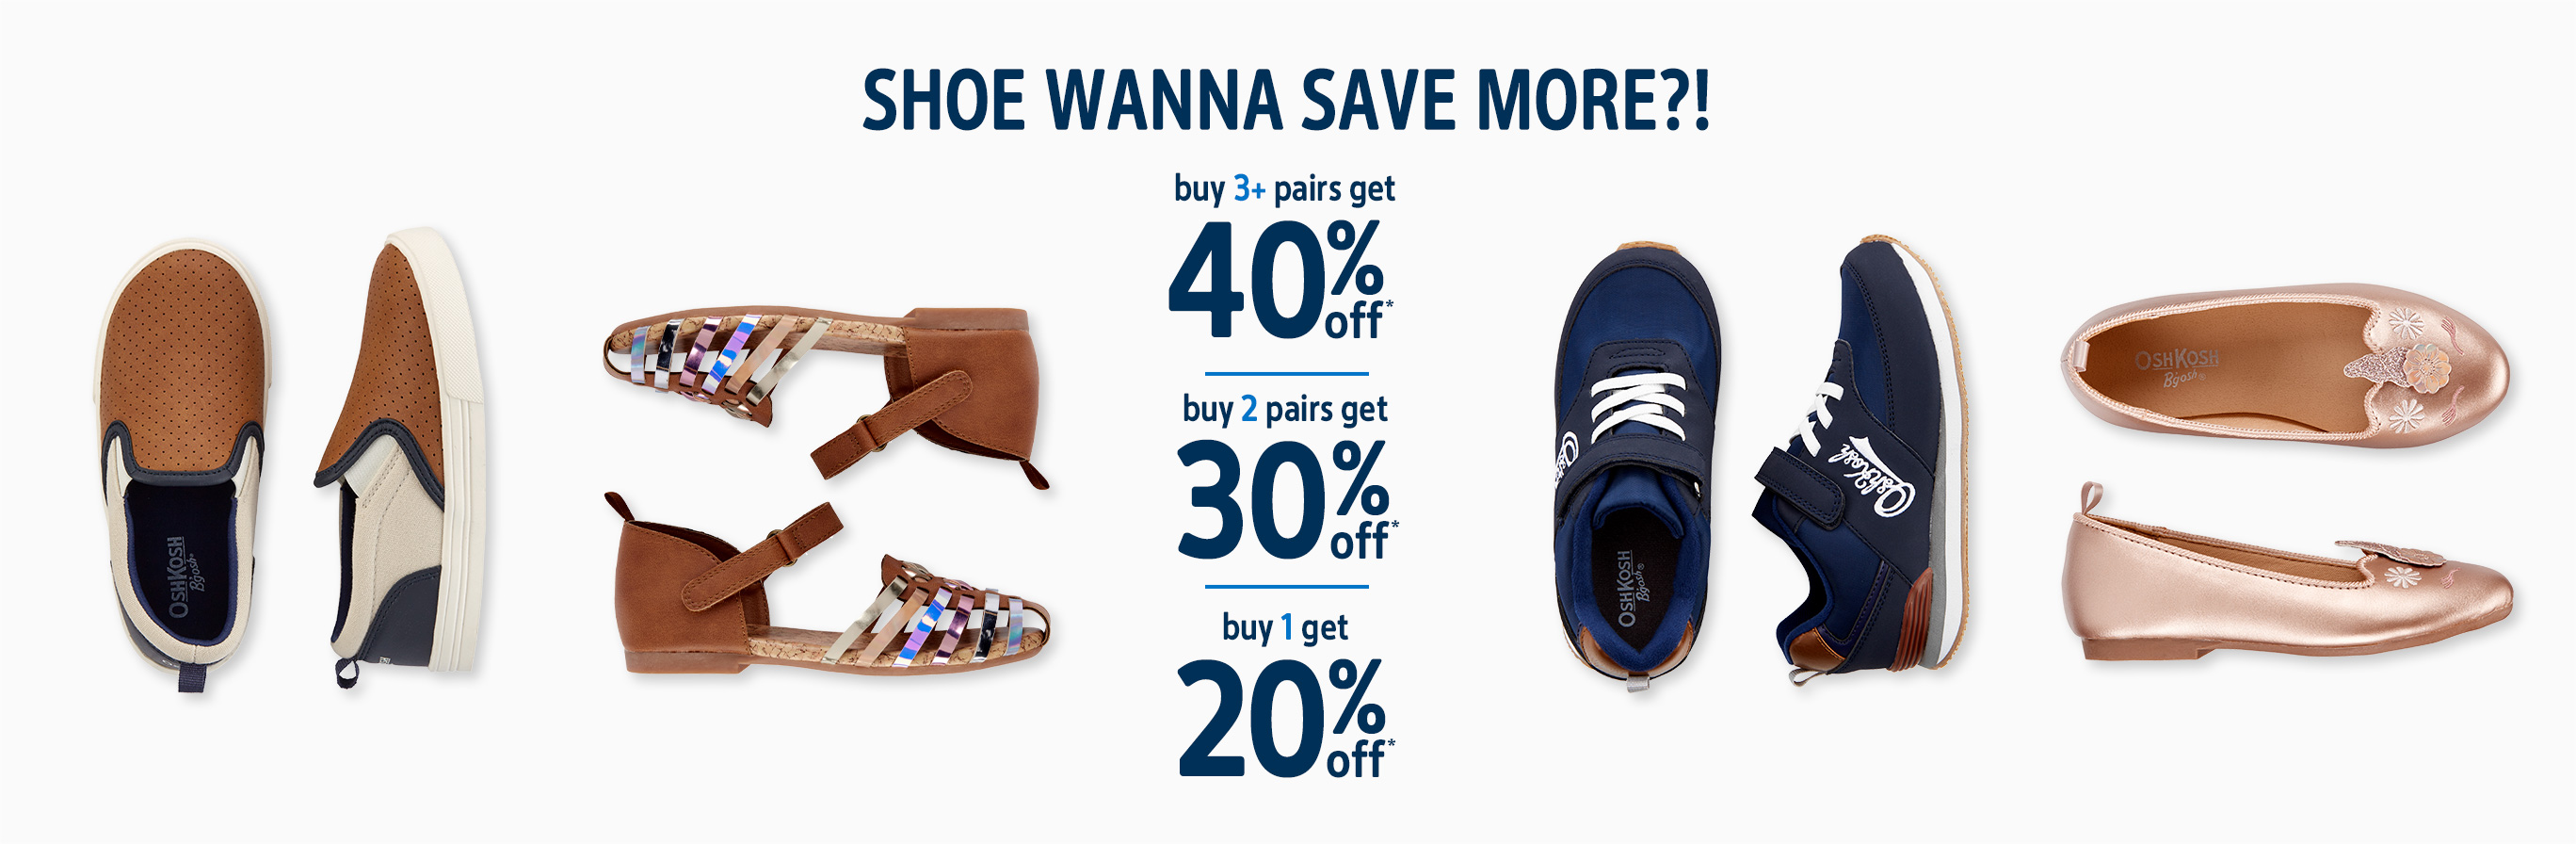 Shoe wanna save more?! | buy 3+ pairs get 40% off* | buy 2 pairs get 30% off* | buy 1 get 20% off*